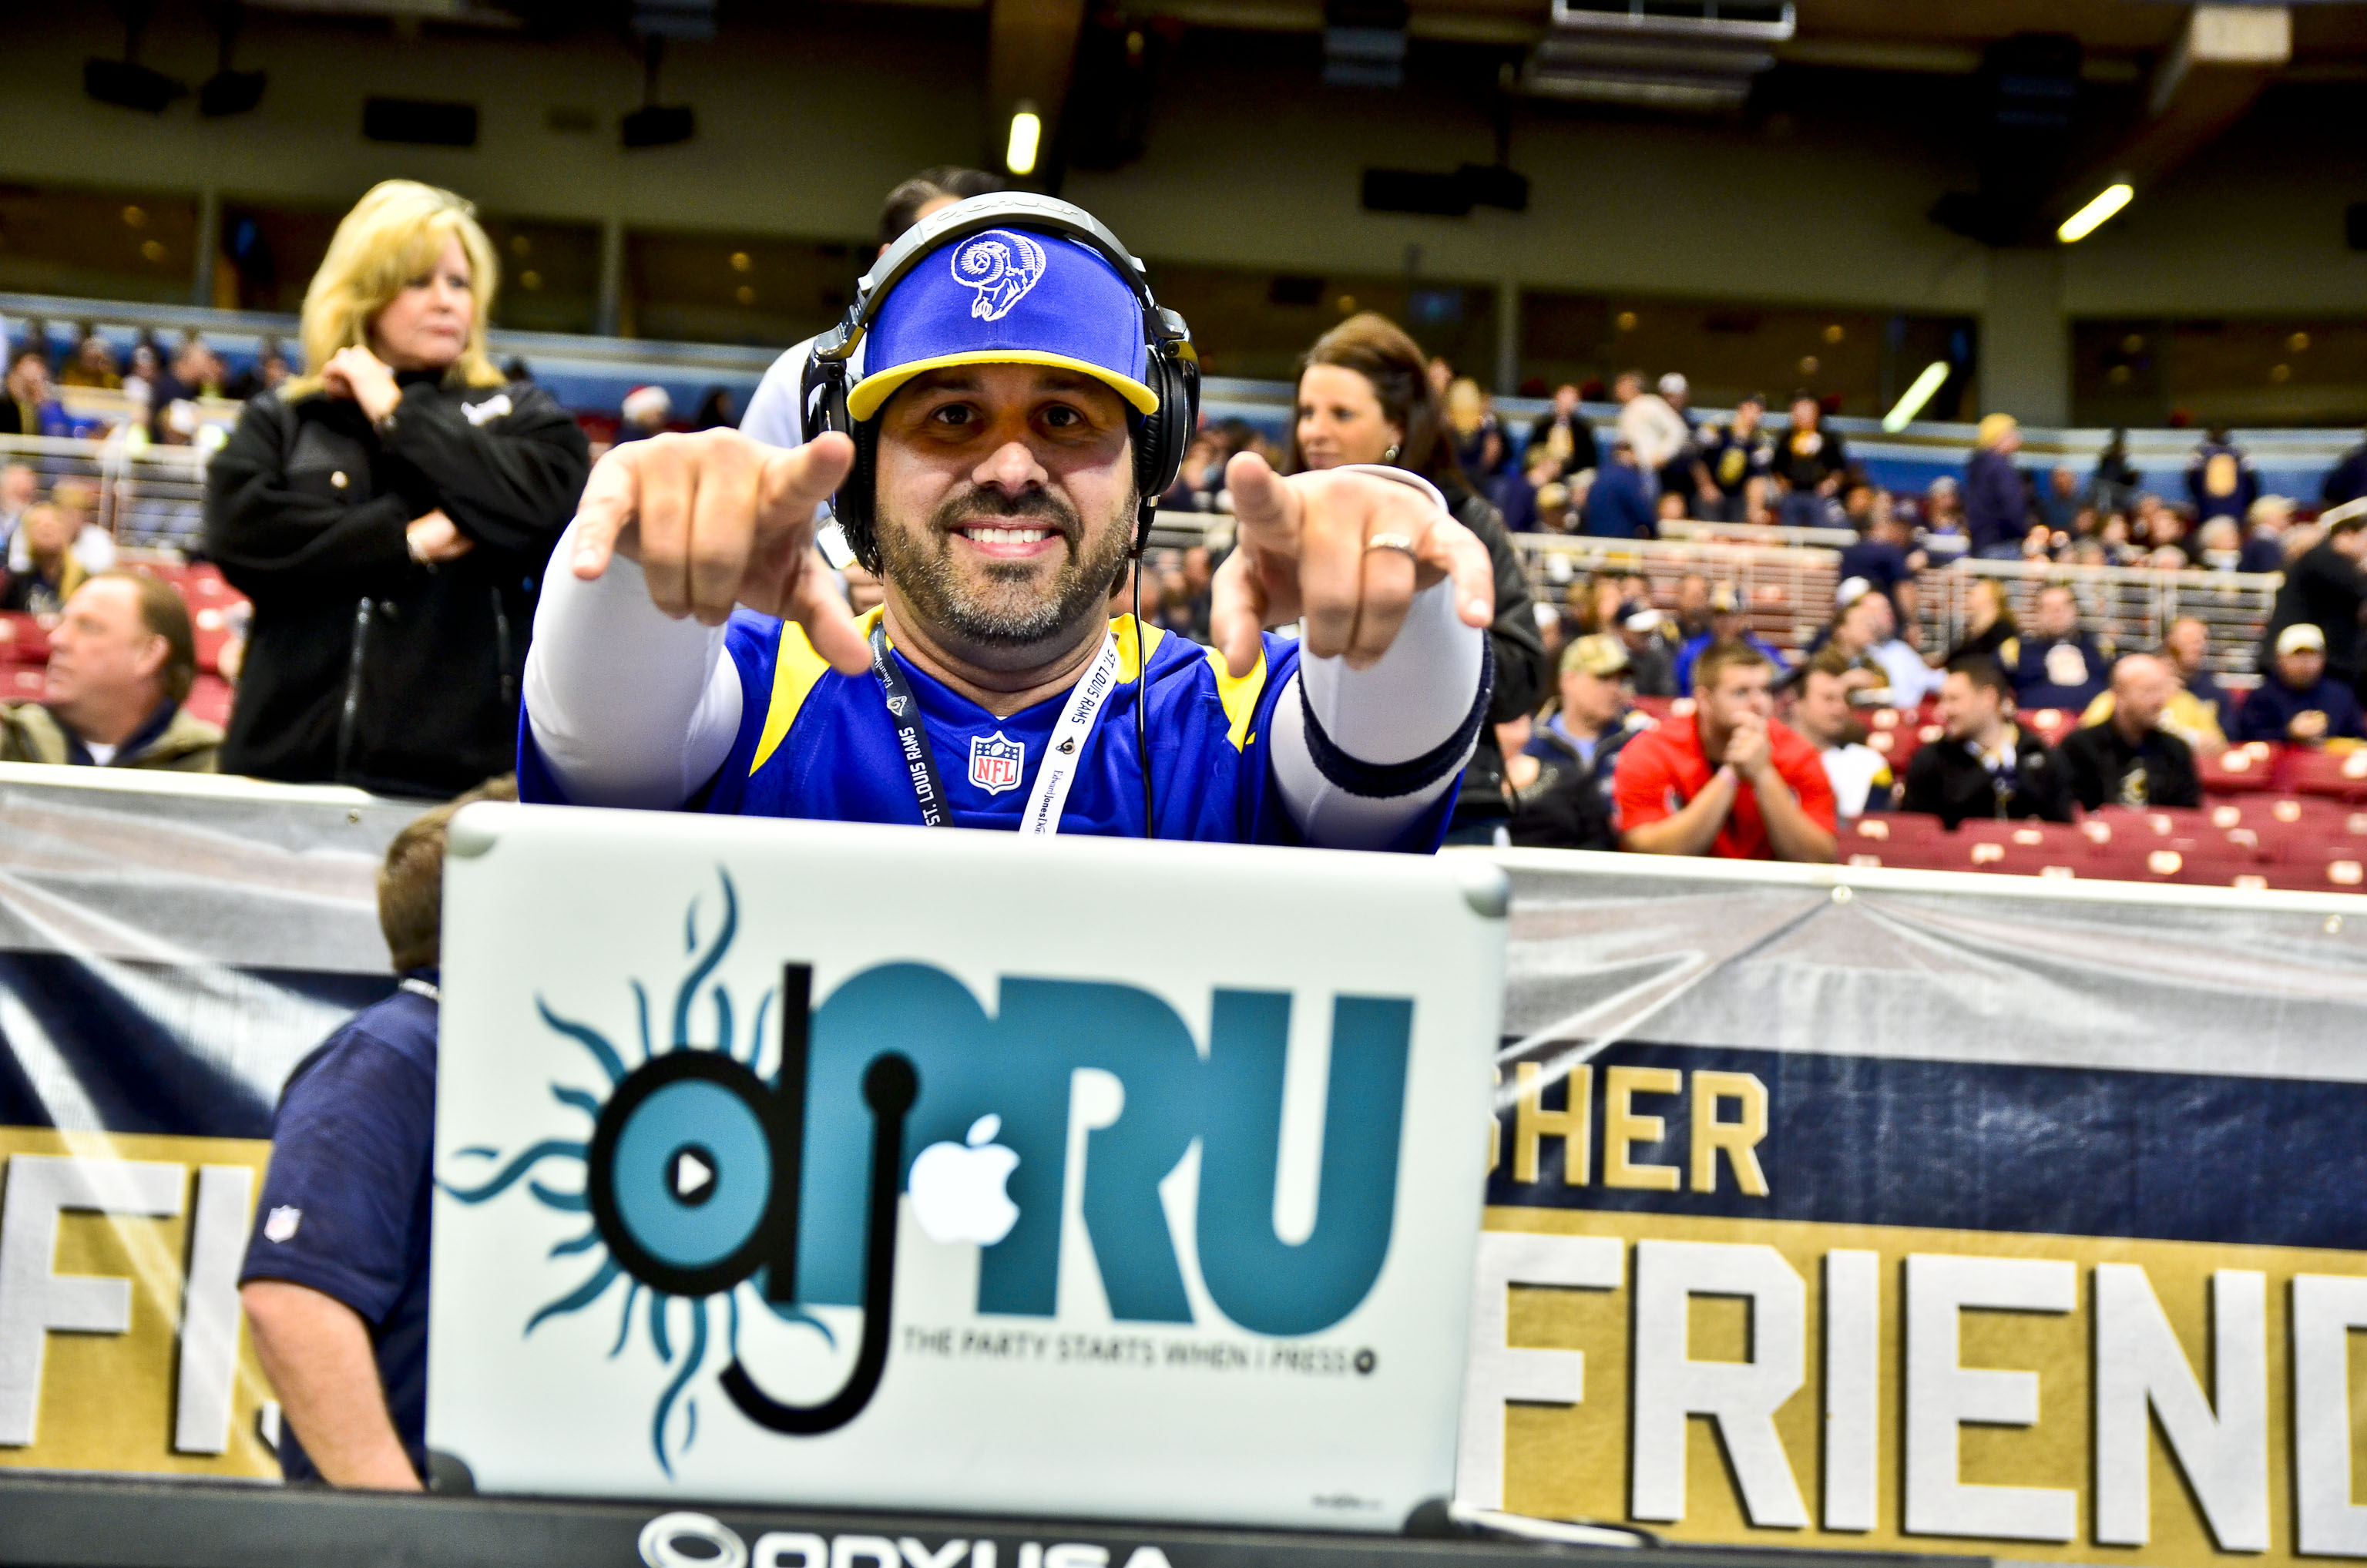 DjPRU St Louis Rams Game Day DJ